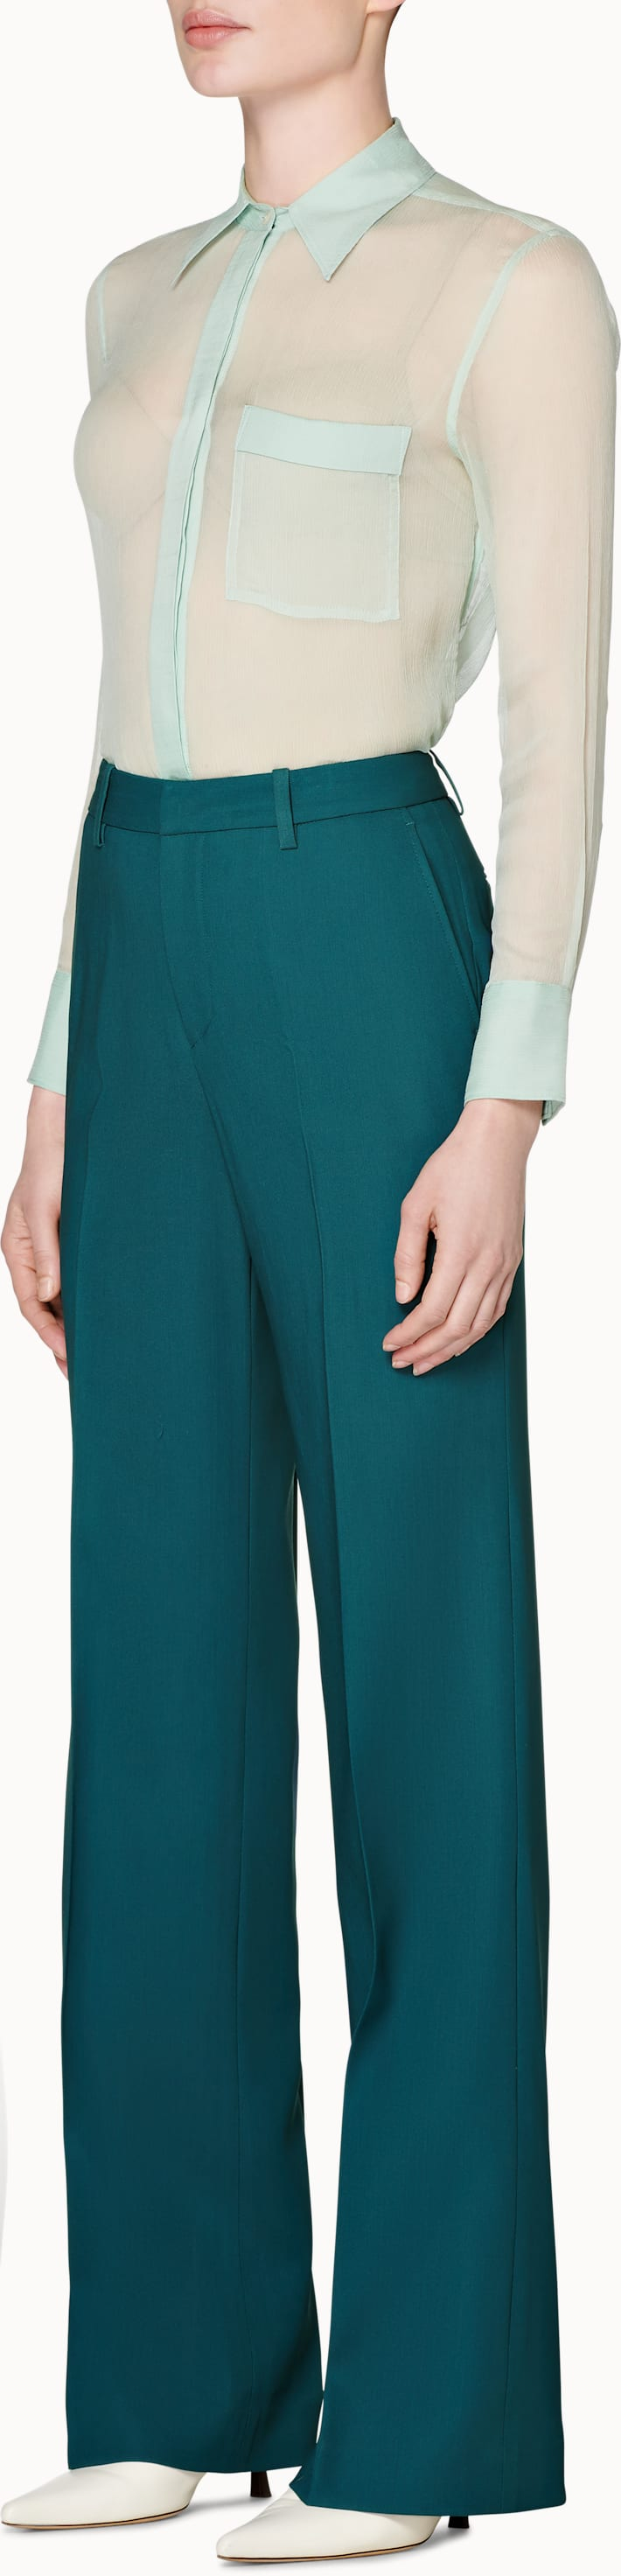 Ally Teal  Trousers